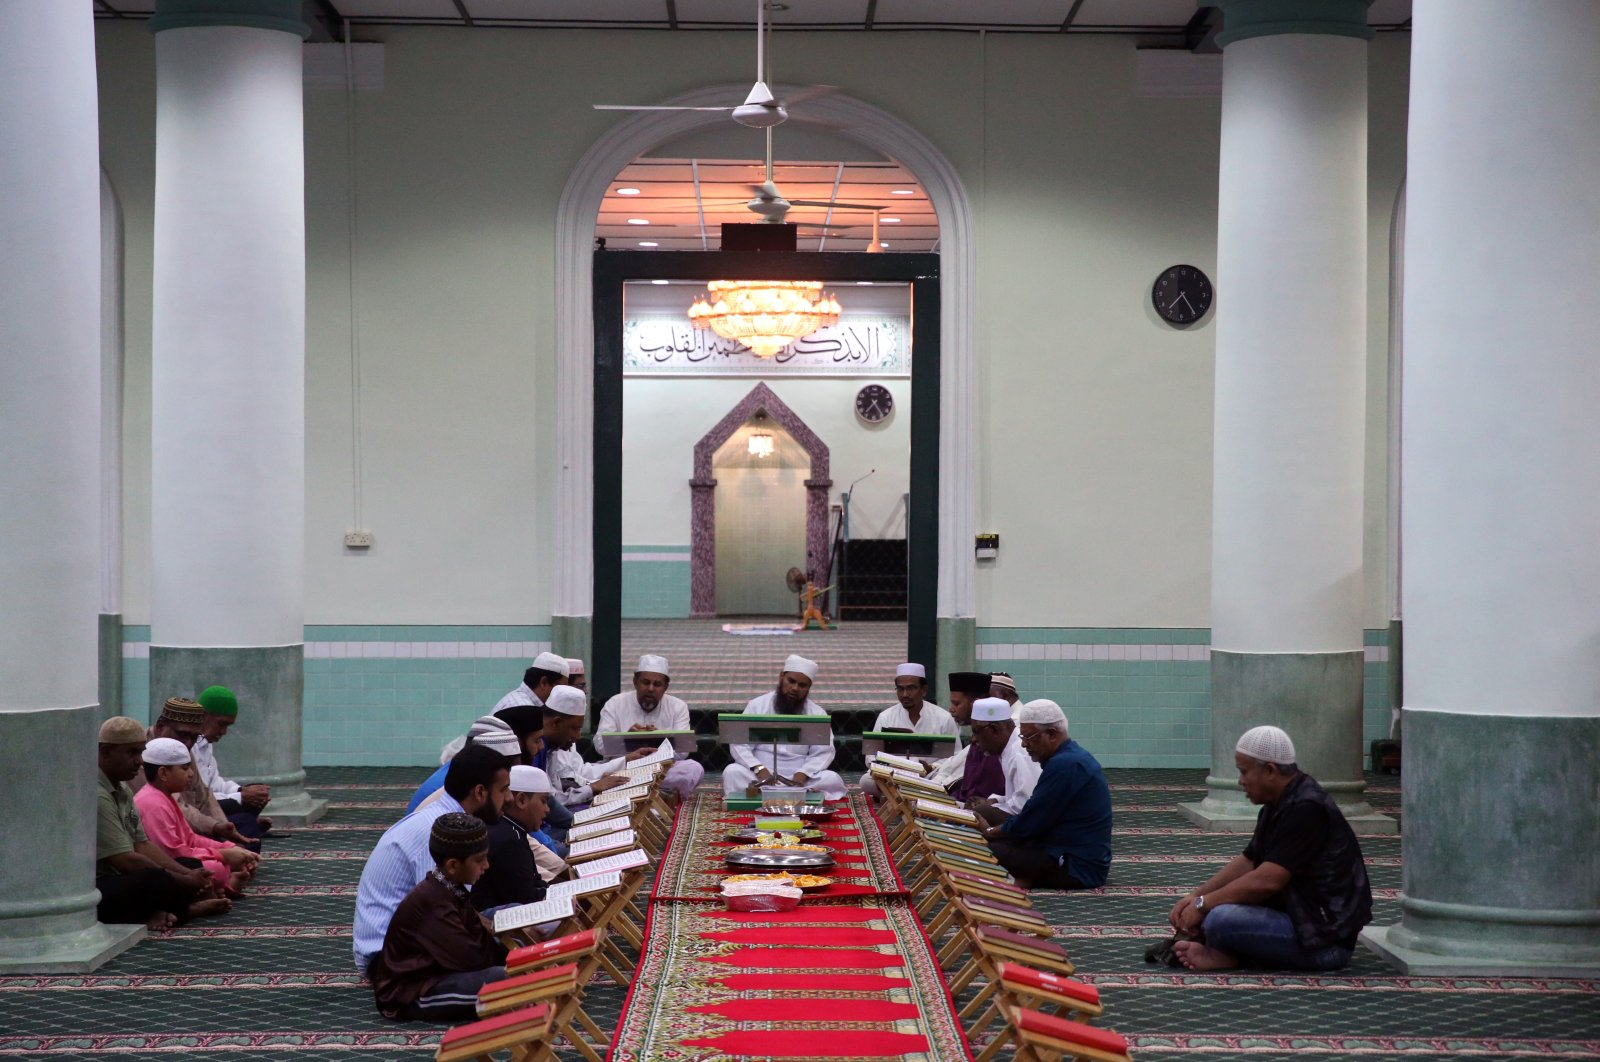 Muslims studying the Quran in Masjid Jamae, one of the earliest mosques in Singapore located in Chinatown, Feb. 25, 2017. (Shutterstock Photo)